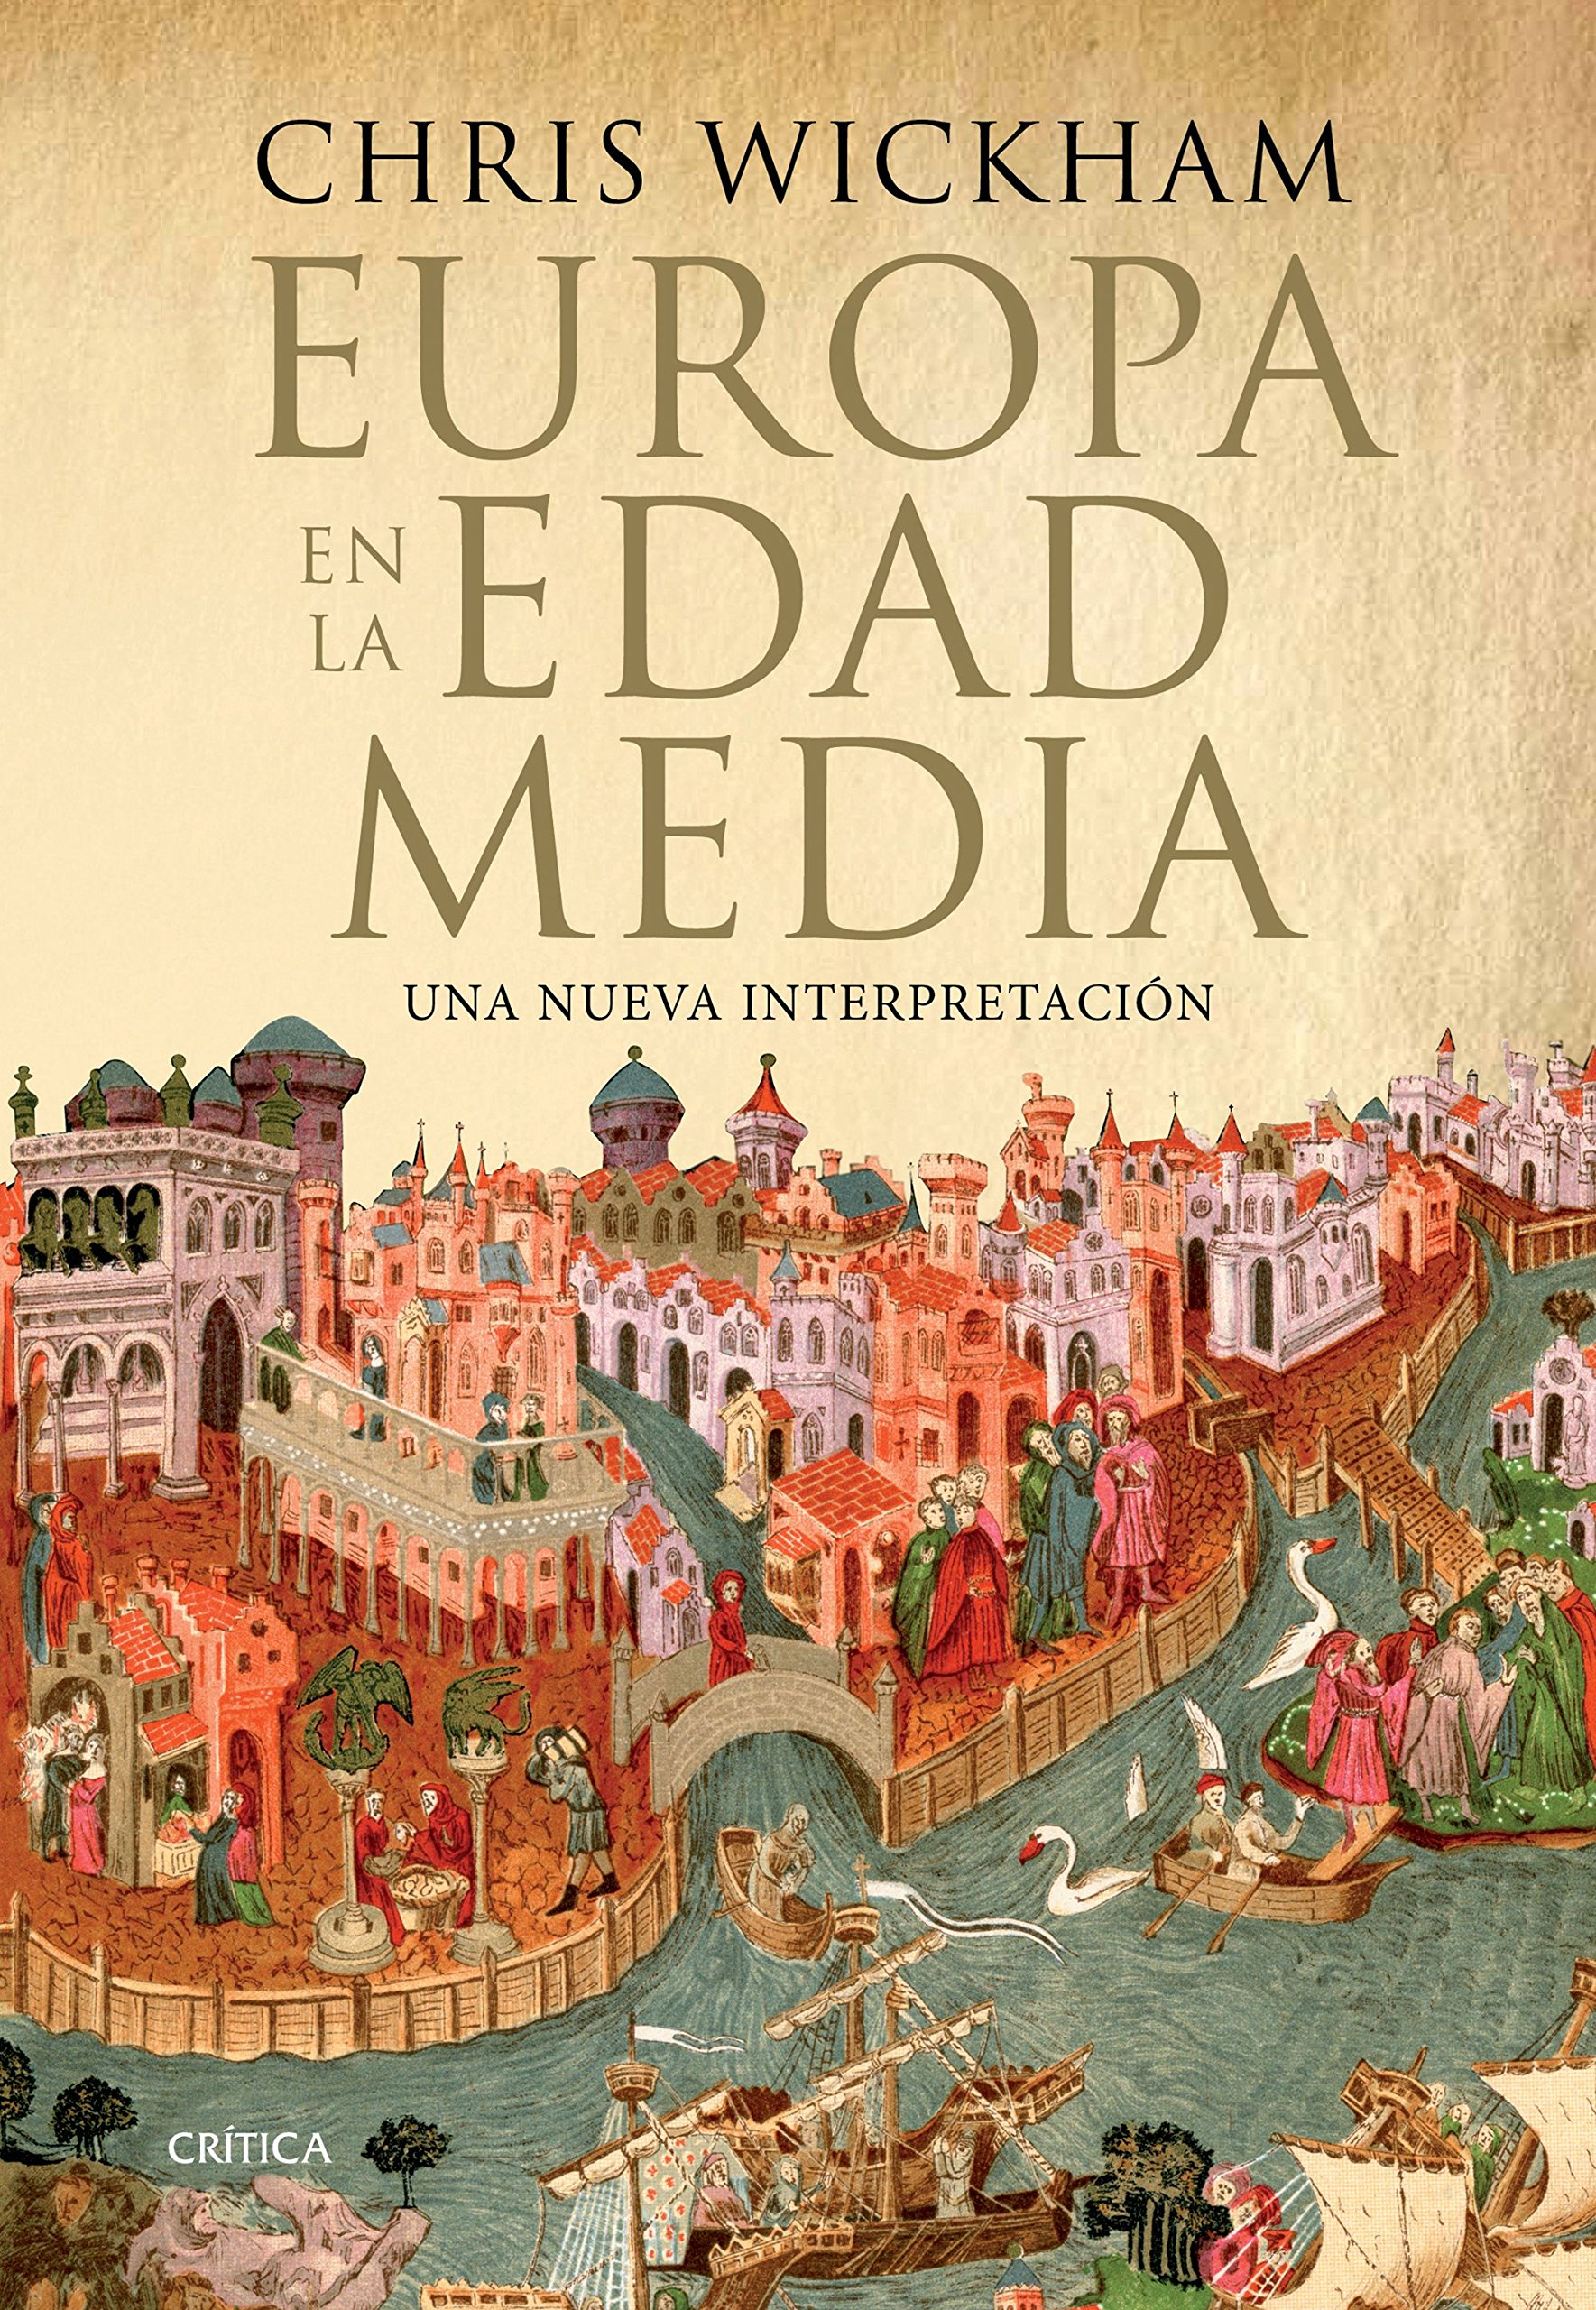 Europa en la Edad Media: Una nueva interpretación Serie Mayor: Amazon.es: Wickham, Chris, Fernández Aúz, Tomás, Eguibar, Beatriz: Libros